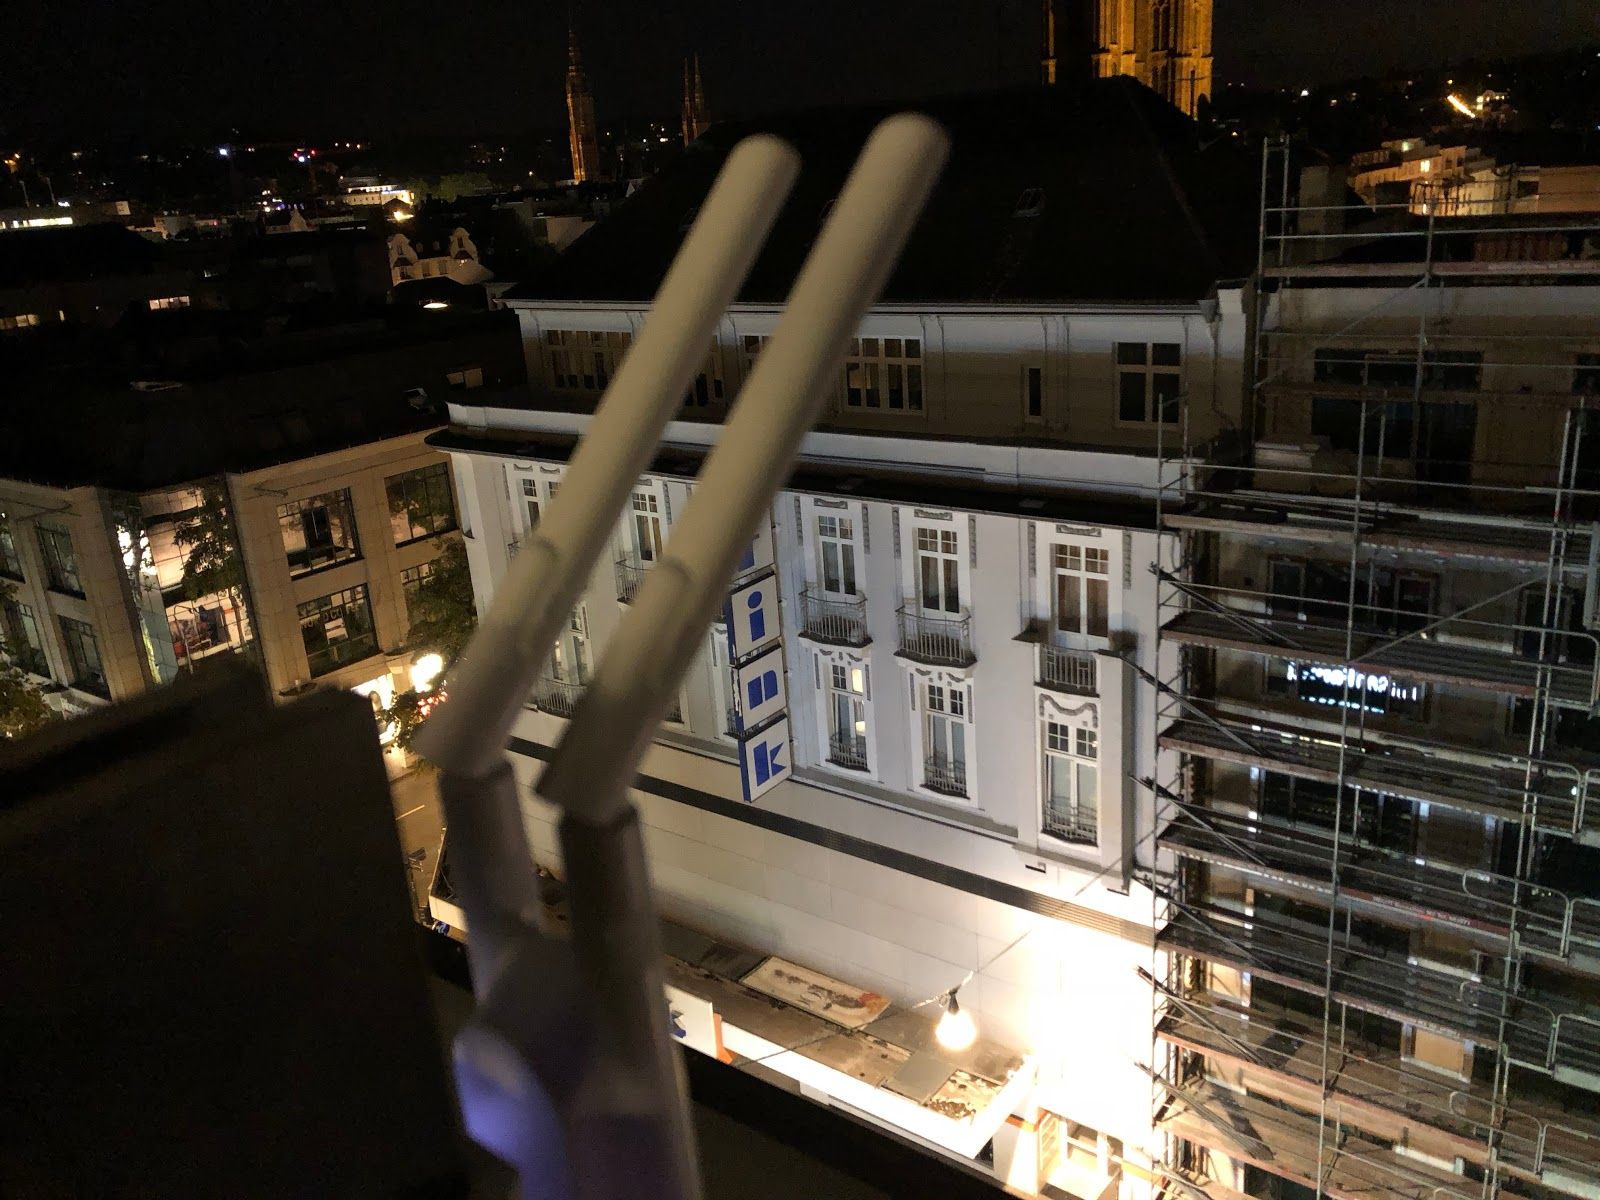 Community Wi-Fi hotspot at night in Wiesbaden